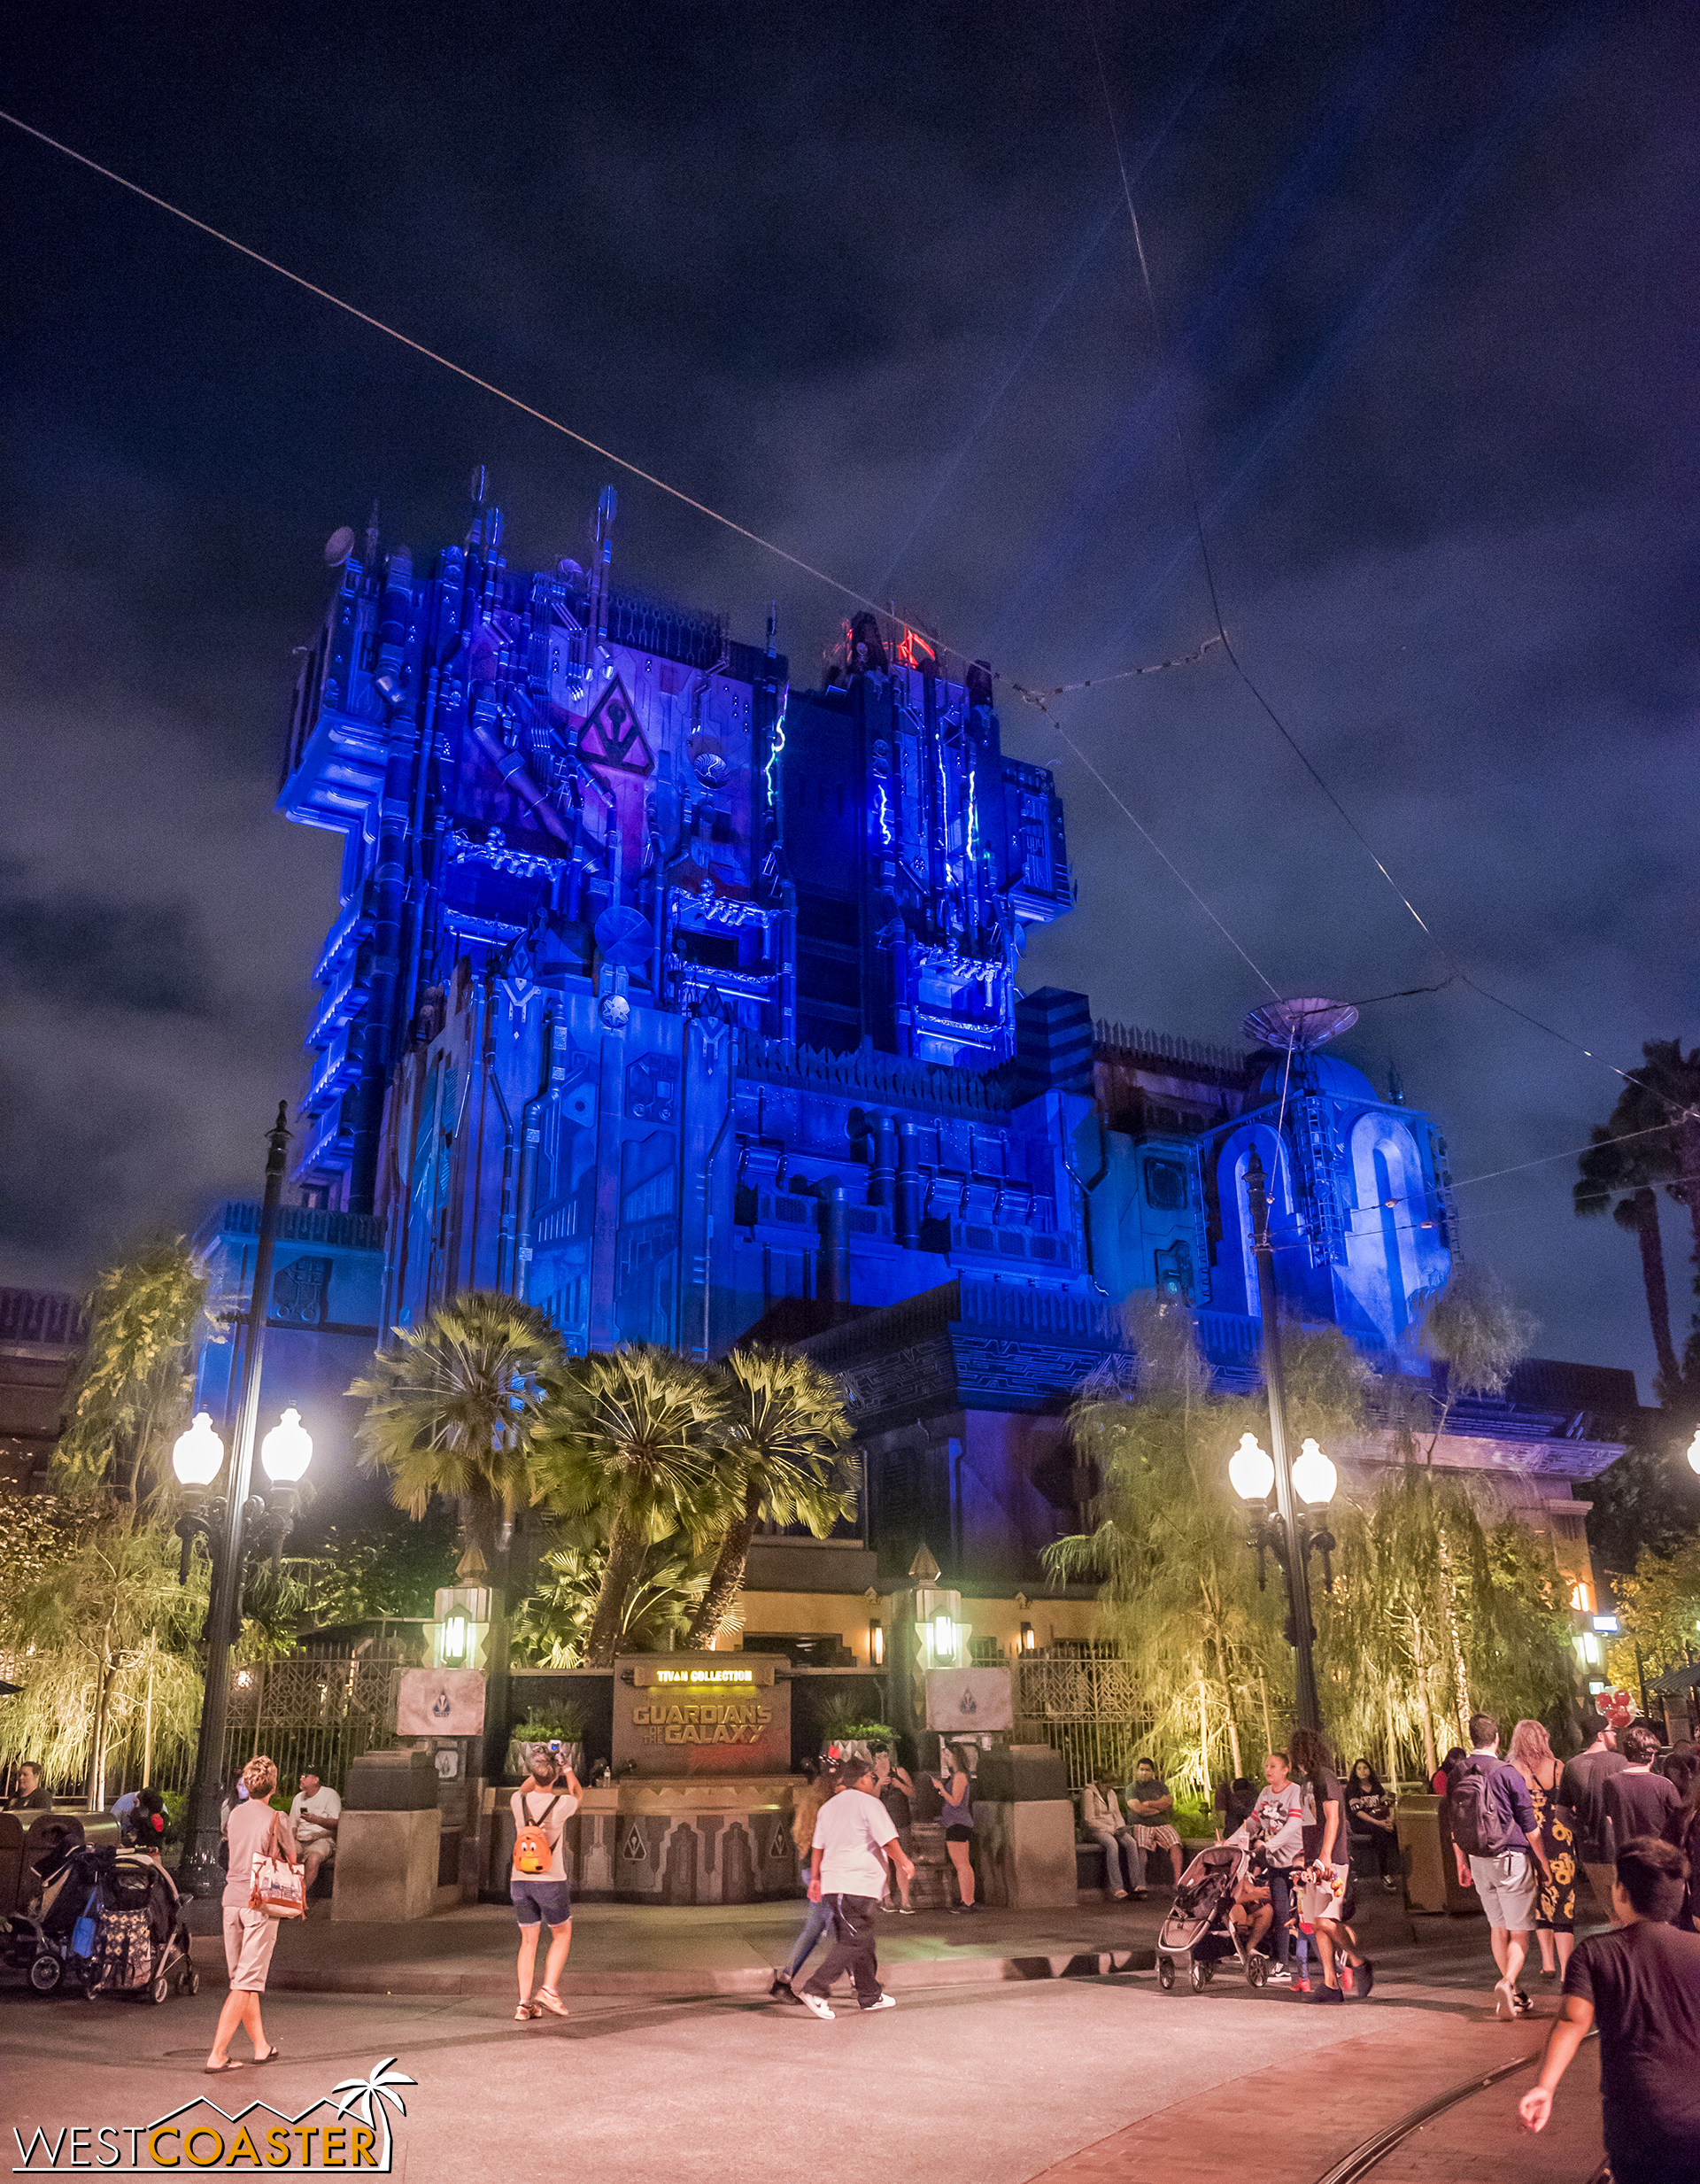 OMG it's the Tower of Terror!!